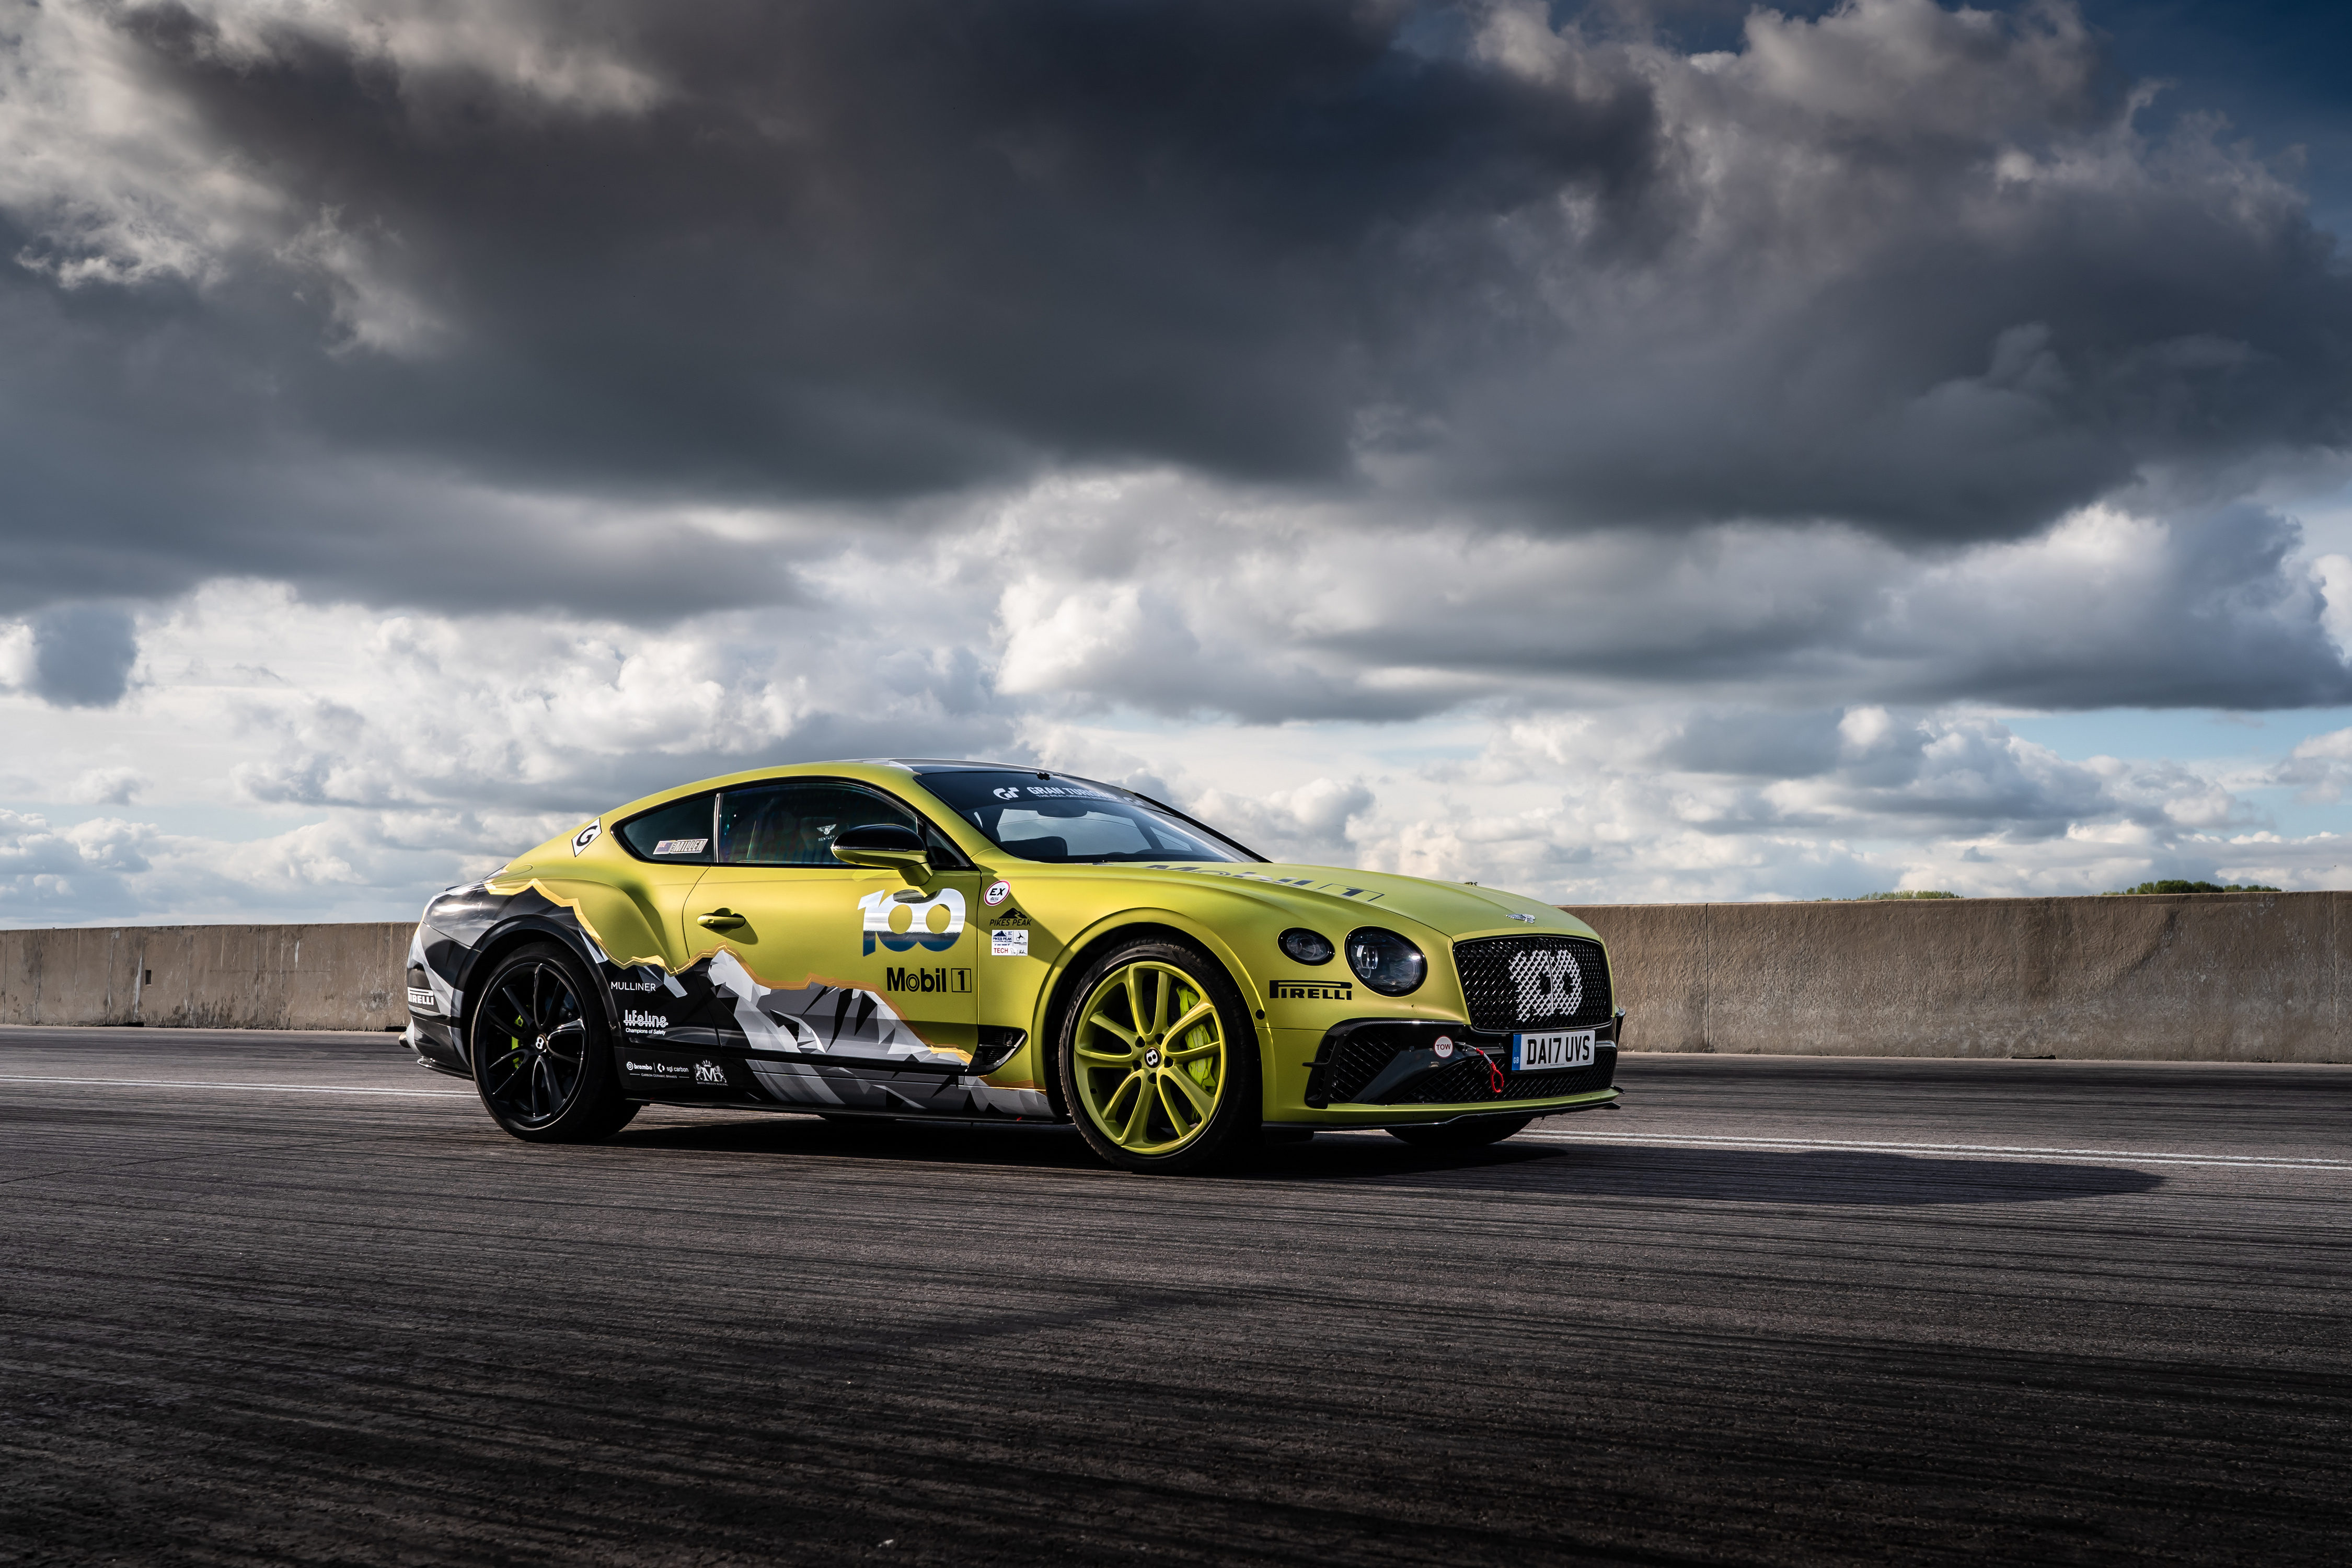 bentley continental gt 2020 4k 1608907778 - Bentley Continental GT 2020 4k - Bentley Continental GT 2020 4k wallpapers